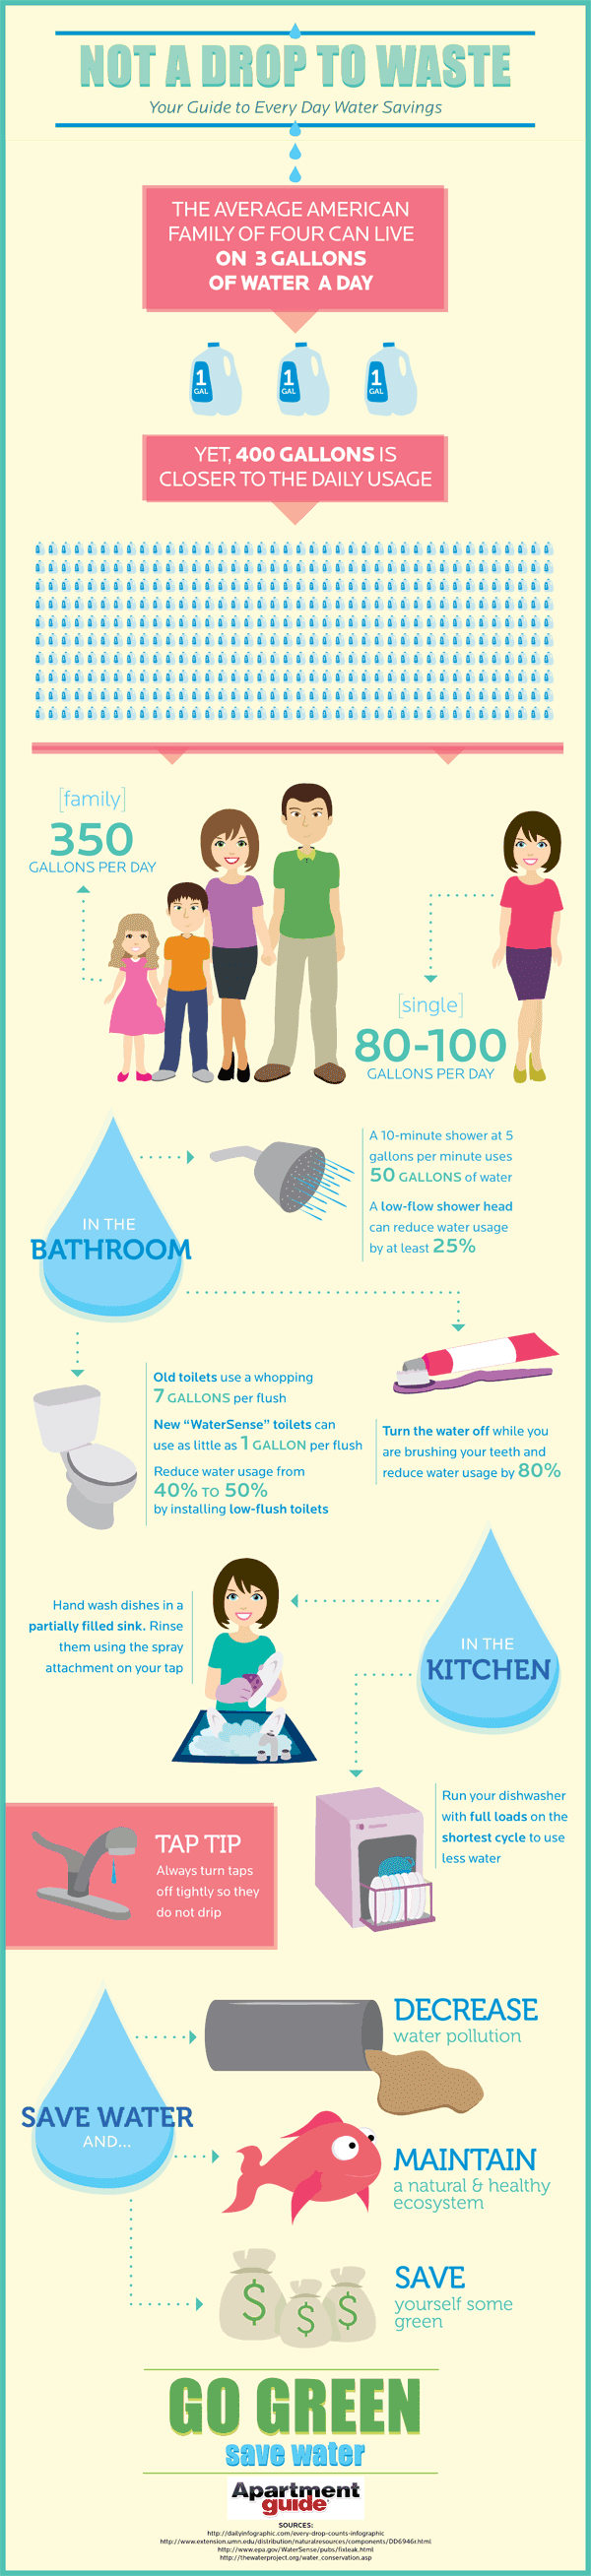 not a drop to waste your guide to everyday water savings